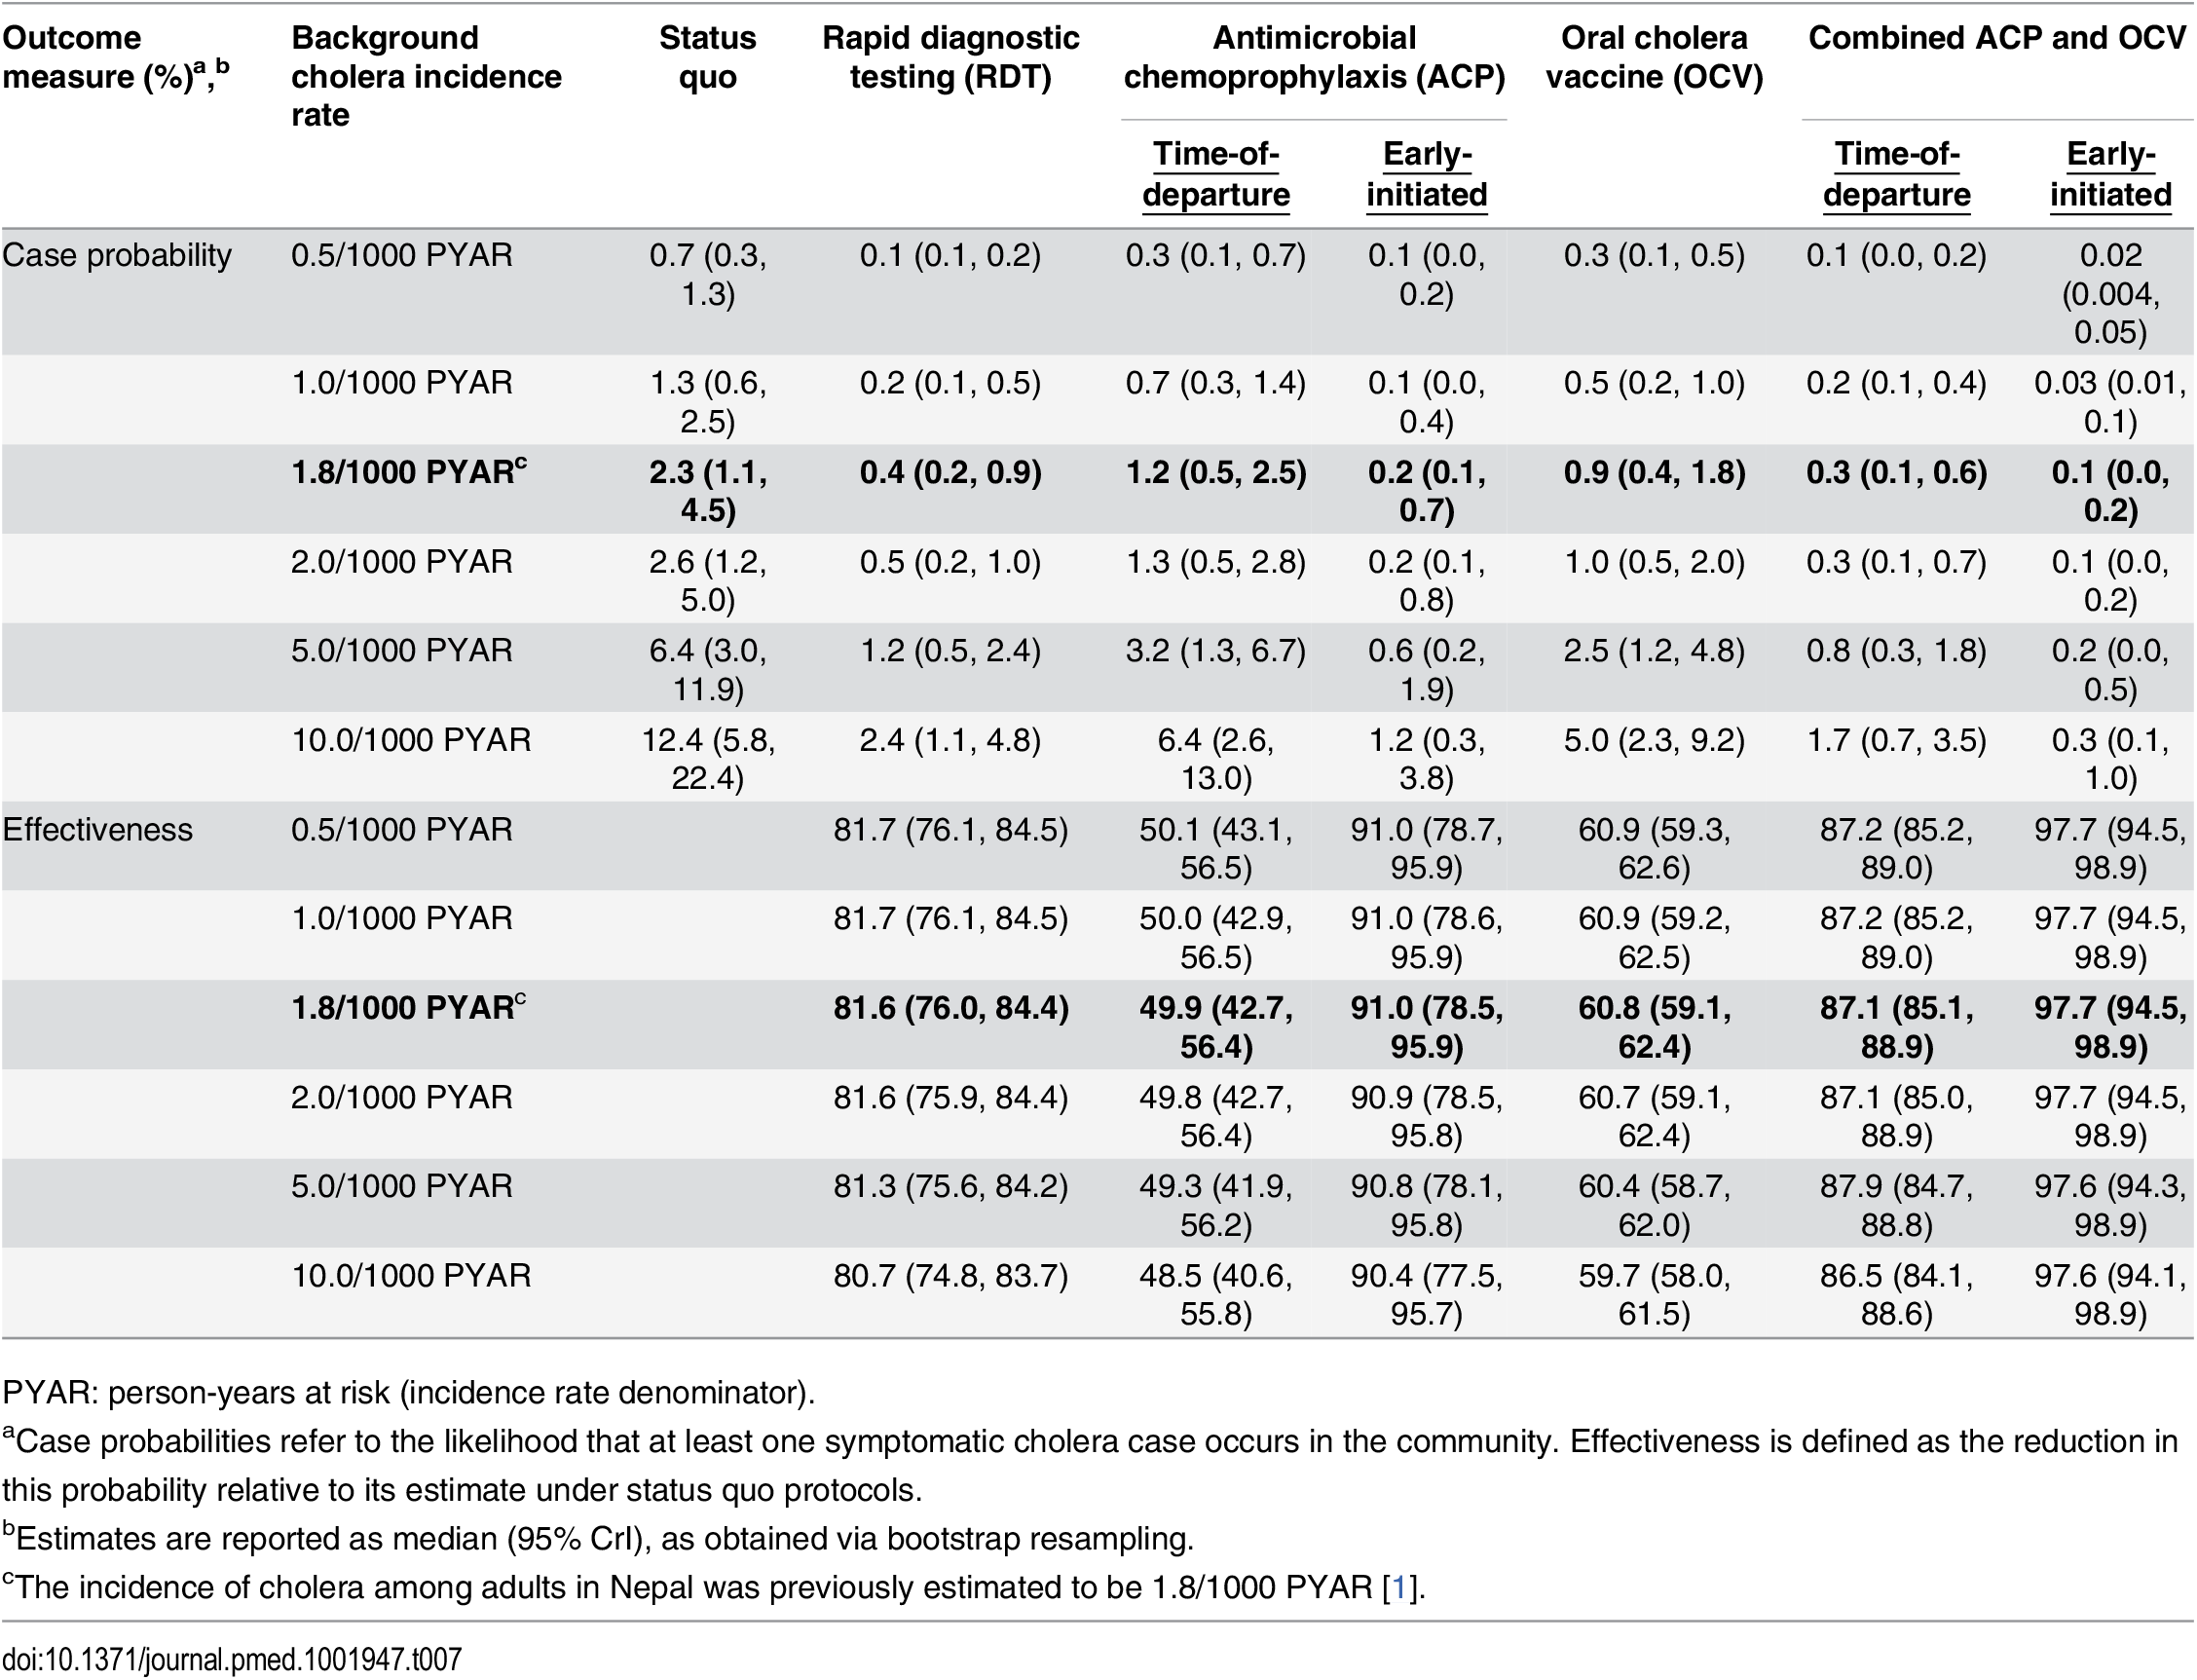 Total reduction in case probability afforded by interventions, with estimated intervention effectiveness.